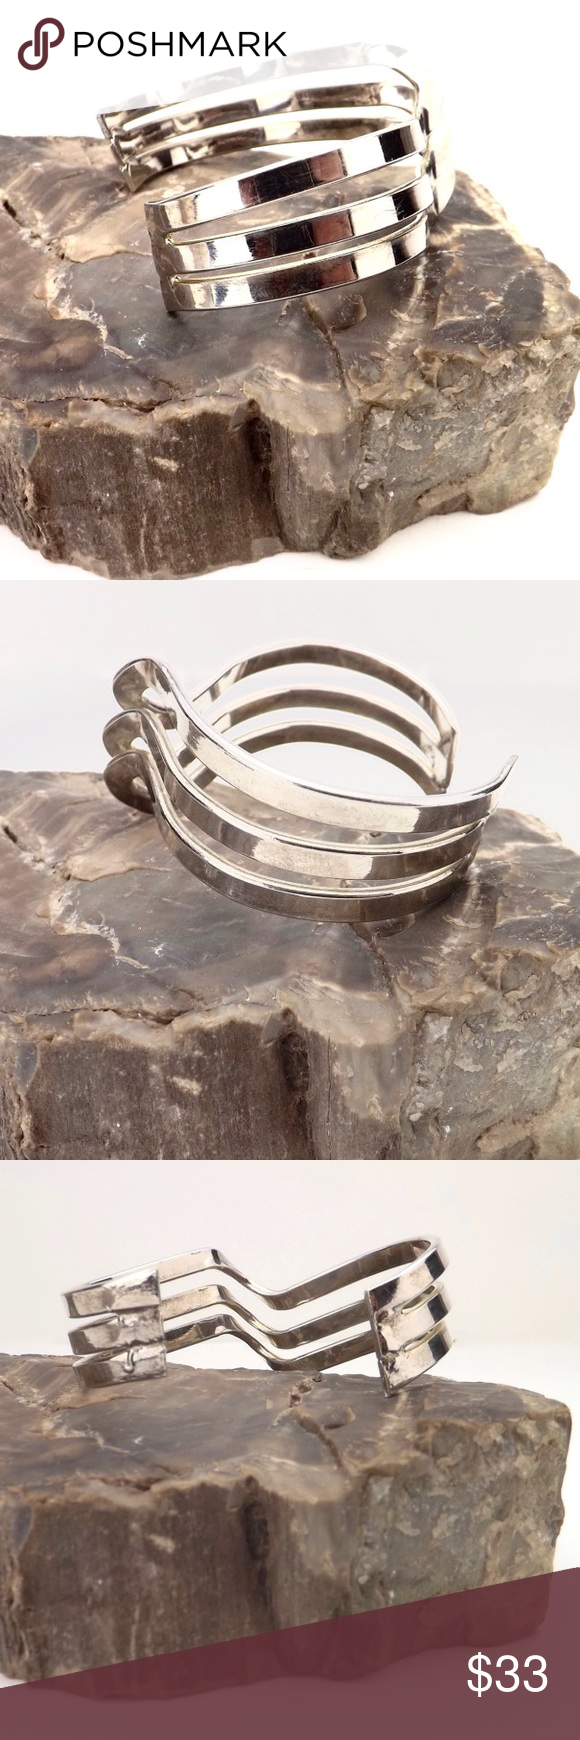 """vintage deco cuff bracelet shiny silver chevron 3 rows smooth polished steel abstract twisted chevron oval cuff bracelet very sleek modern look good vintage condition may be some minor discoloration spots up close due to age but still very shiny width varies due to shape but approx 1"""" average inside circumference 7"""" wrist opening 1 1/4"""" solid piece very little give 1.5 oz vintage Jewelry Bracelets"""